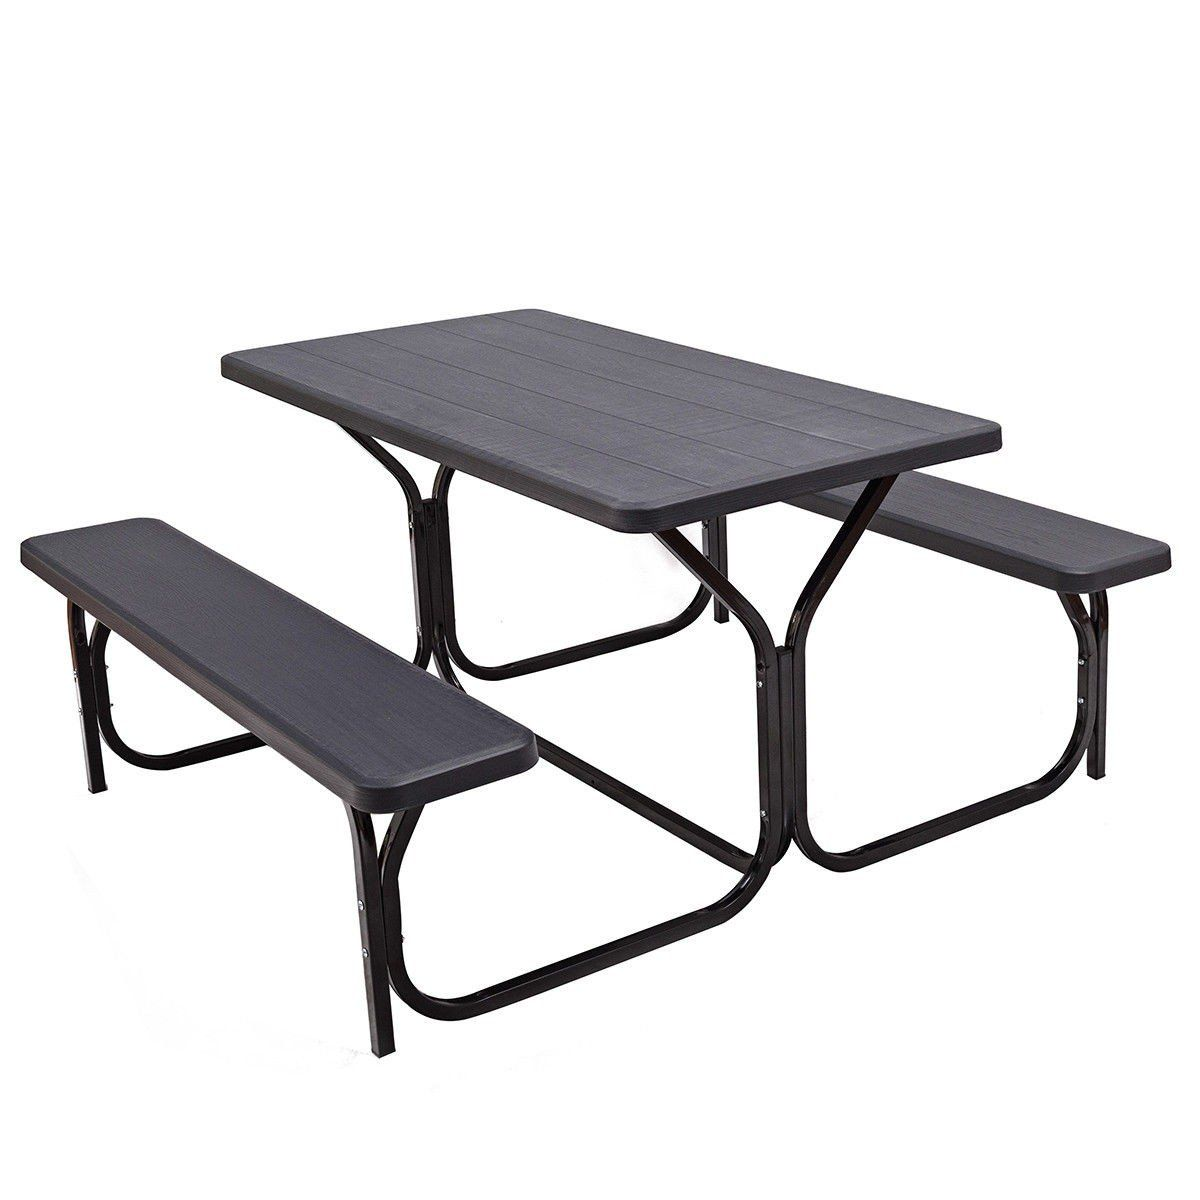 Custpromo Picnic Table And Bench Set All Weather Resistant Steel Frame Wood Like Texture Outdoor D Picnic Table Bench Table And Bench Set Outdoor Picnic Tables